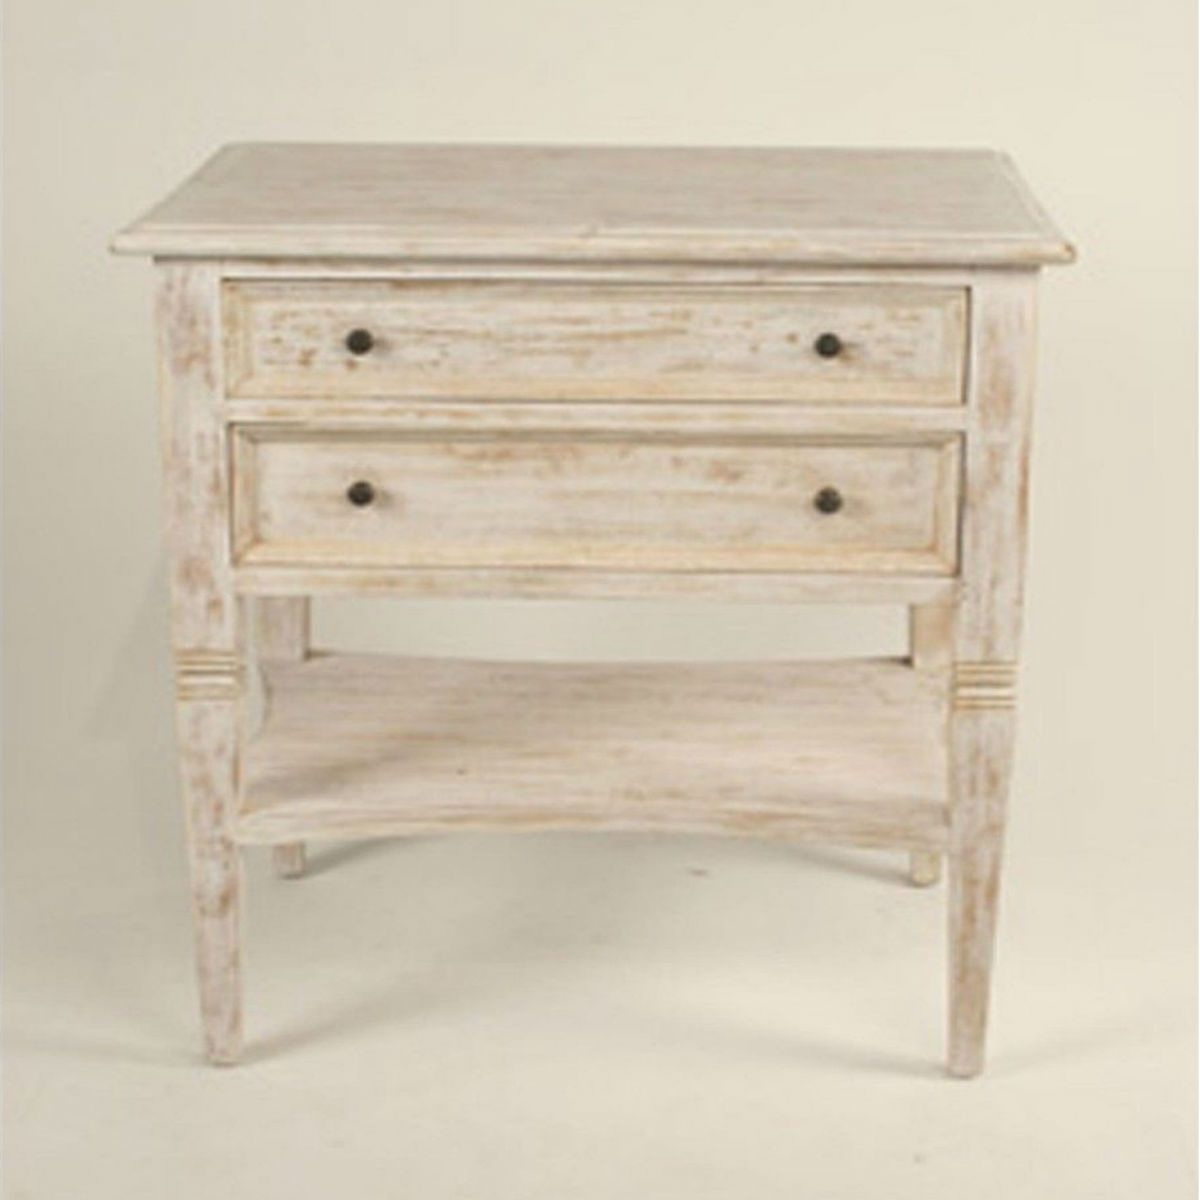 new collection white washed furniture has arrived our boat house drawer whitewash accent table oxford side living room lounge chair malm crystal lamp base old tables holiday